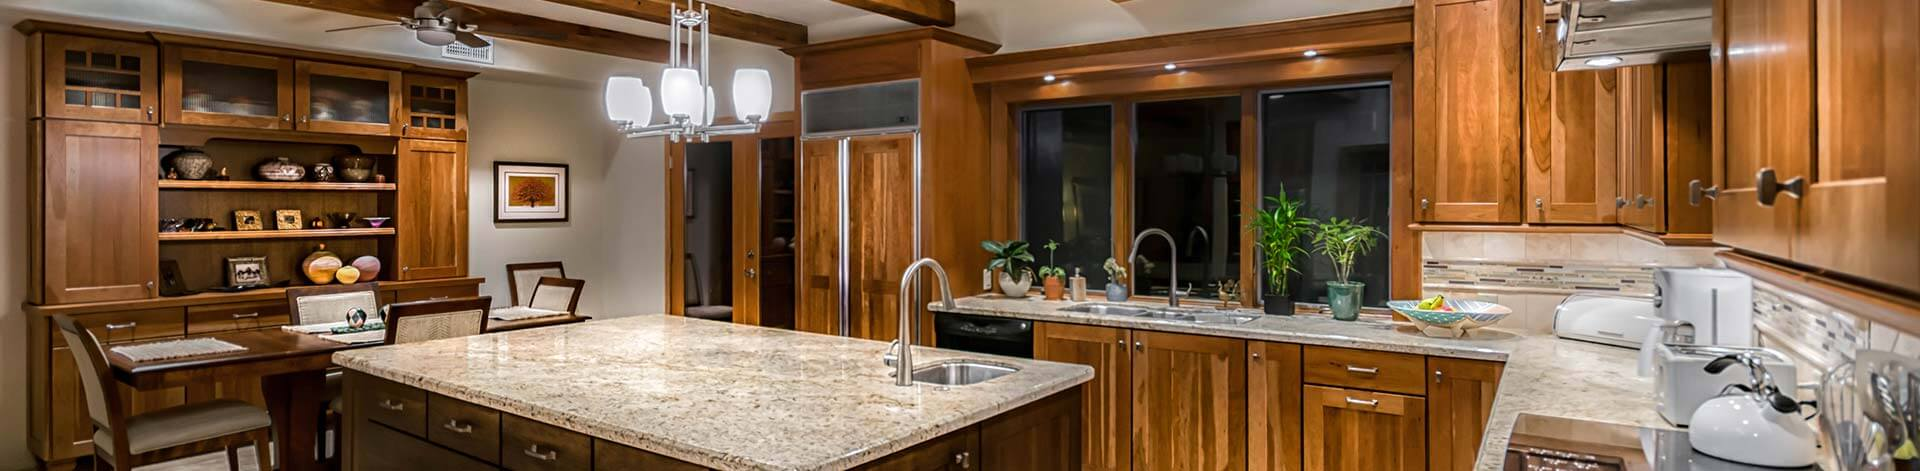 Kitchen Remodeling Phoenix Az Model Kitchen Remodeling In Phoenix & Scottsdale  Republic West Remodeling